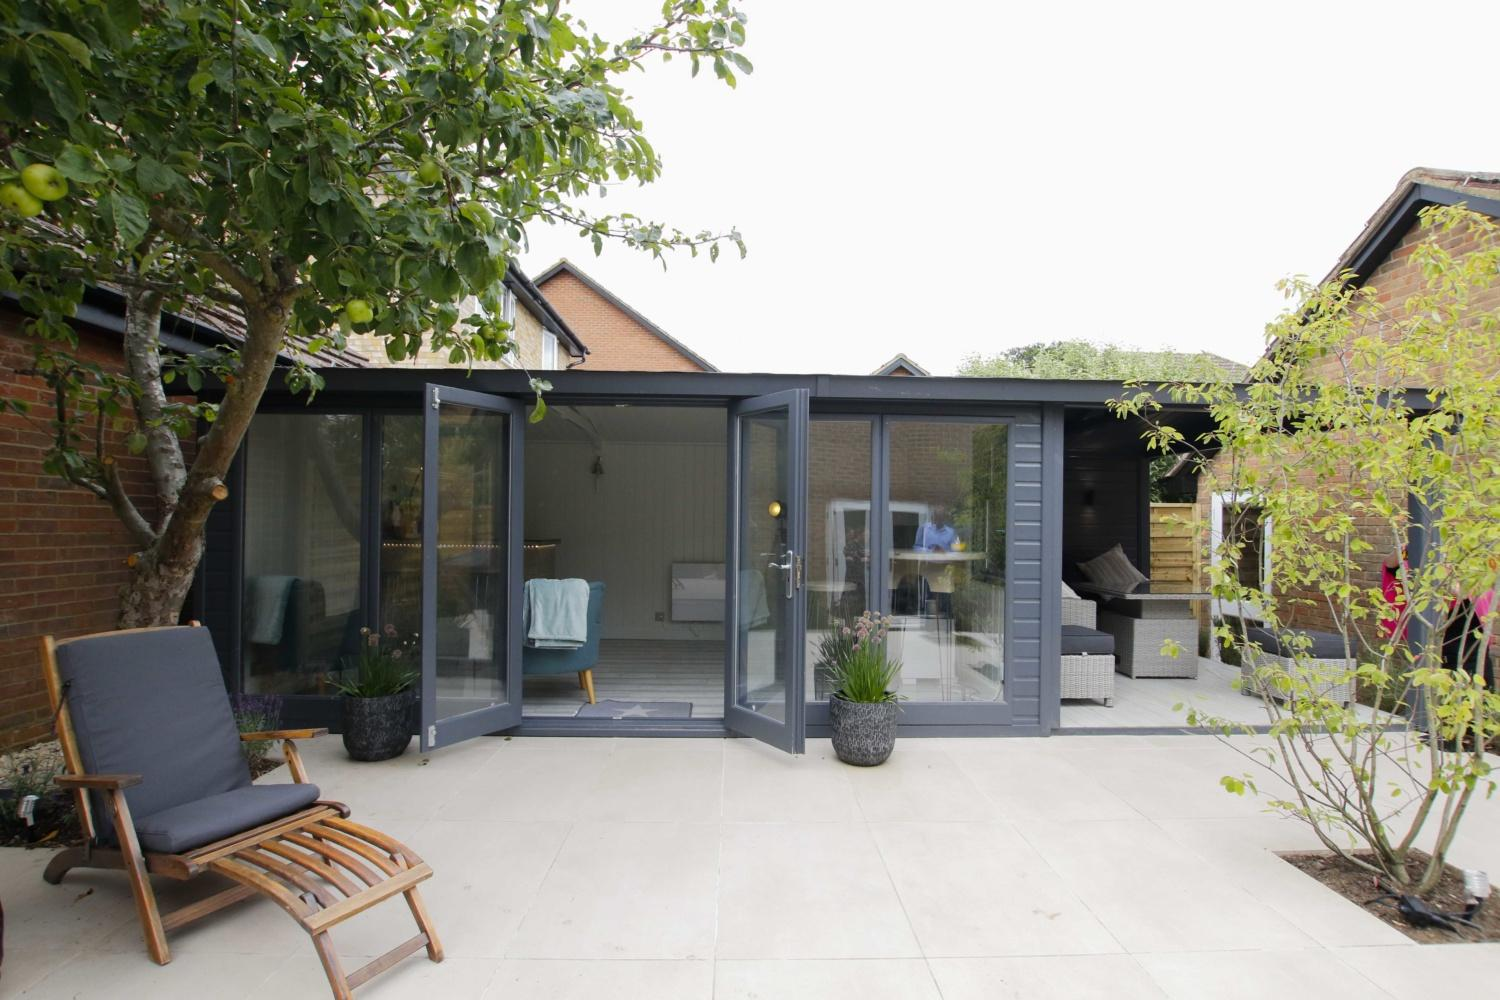 A wide garden building sits at the top of a pated garden, with the doors open wide. A modern version of The Pleasure Garden